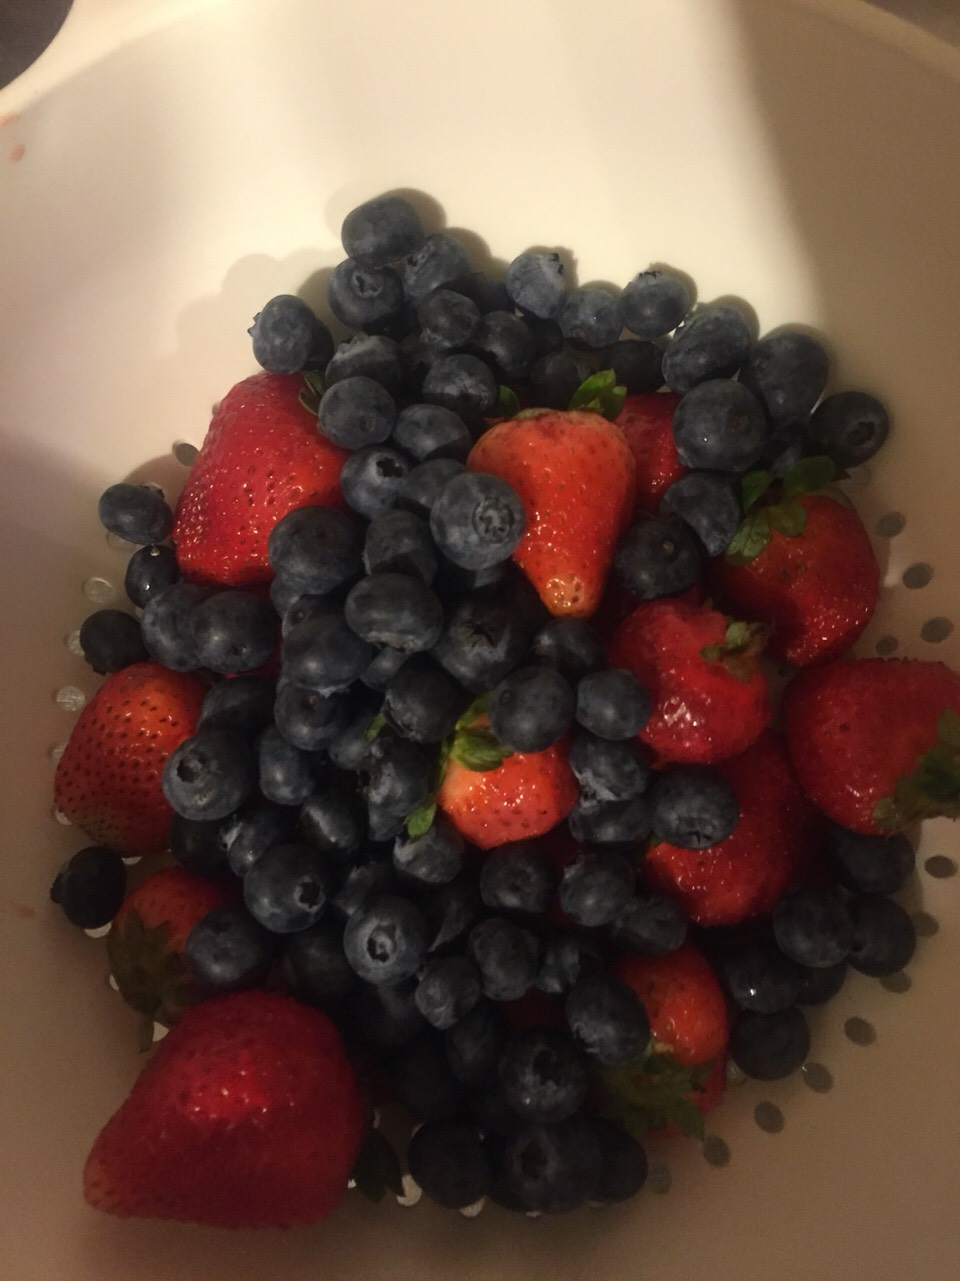 Put all your strawberries and blueberries inside a strainer.